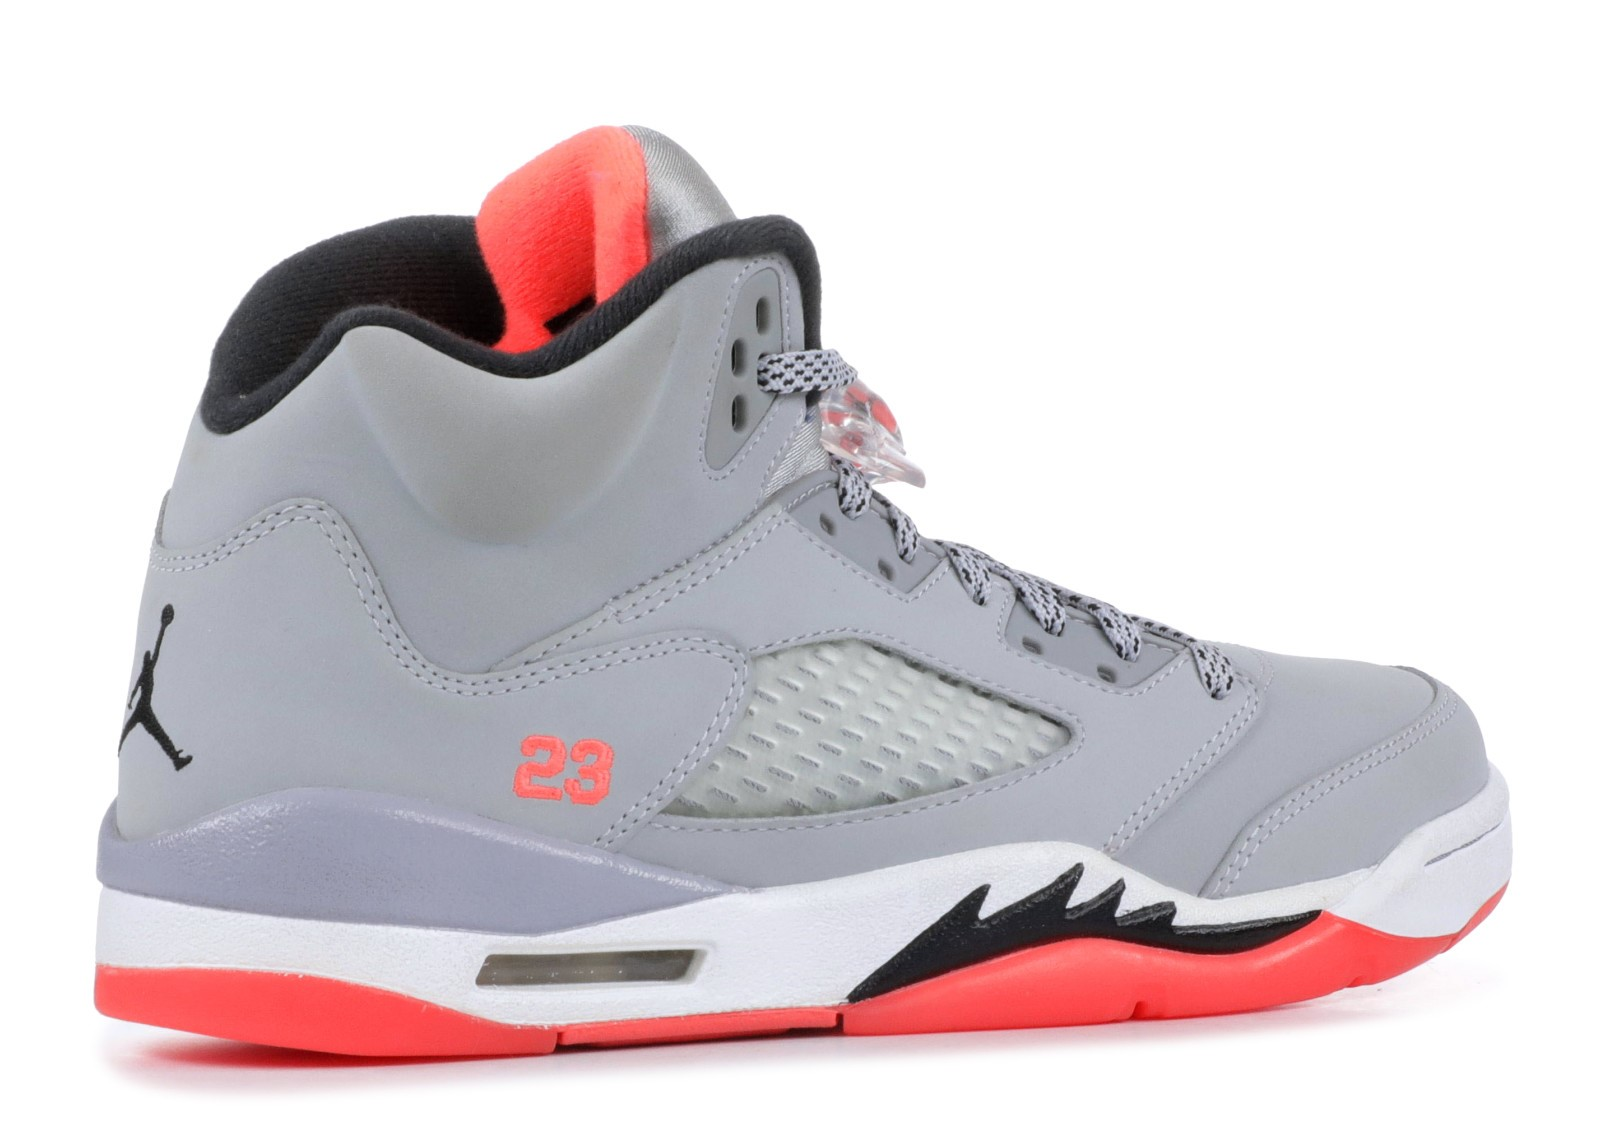 Offert Air Jordan 5 Retro Gg (Gs) 'Hot Lava' Gris Orange (440892-018)